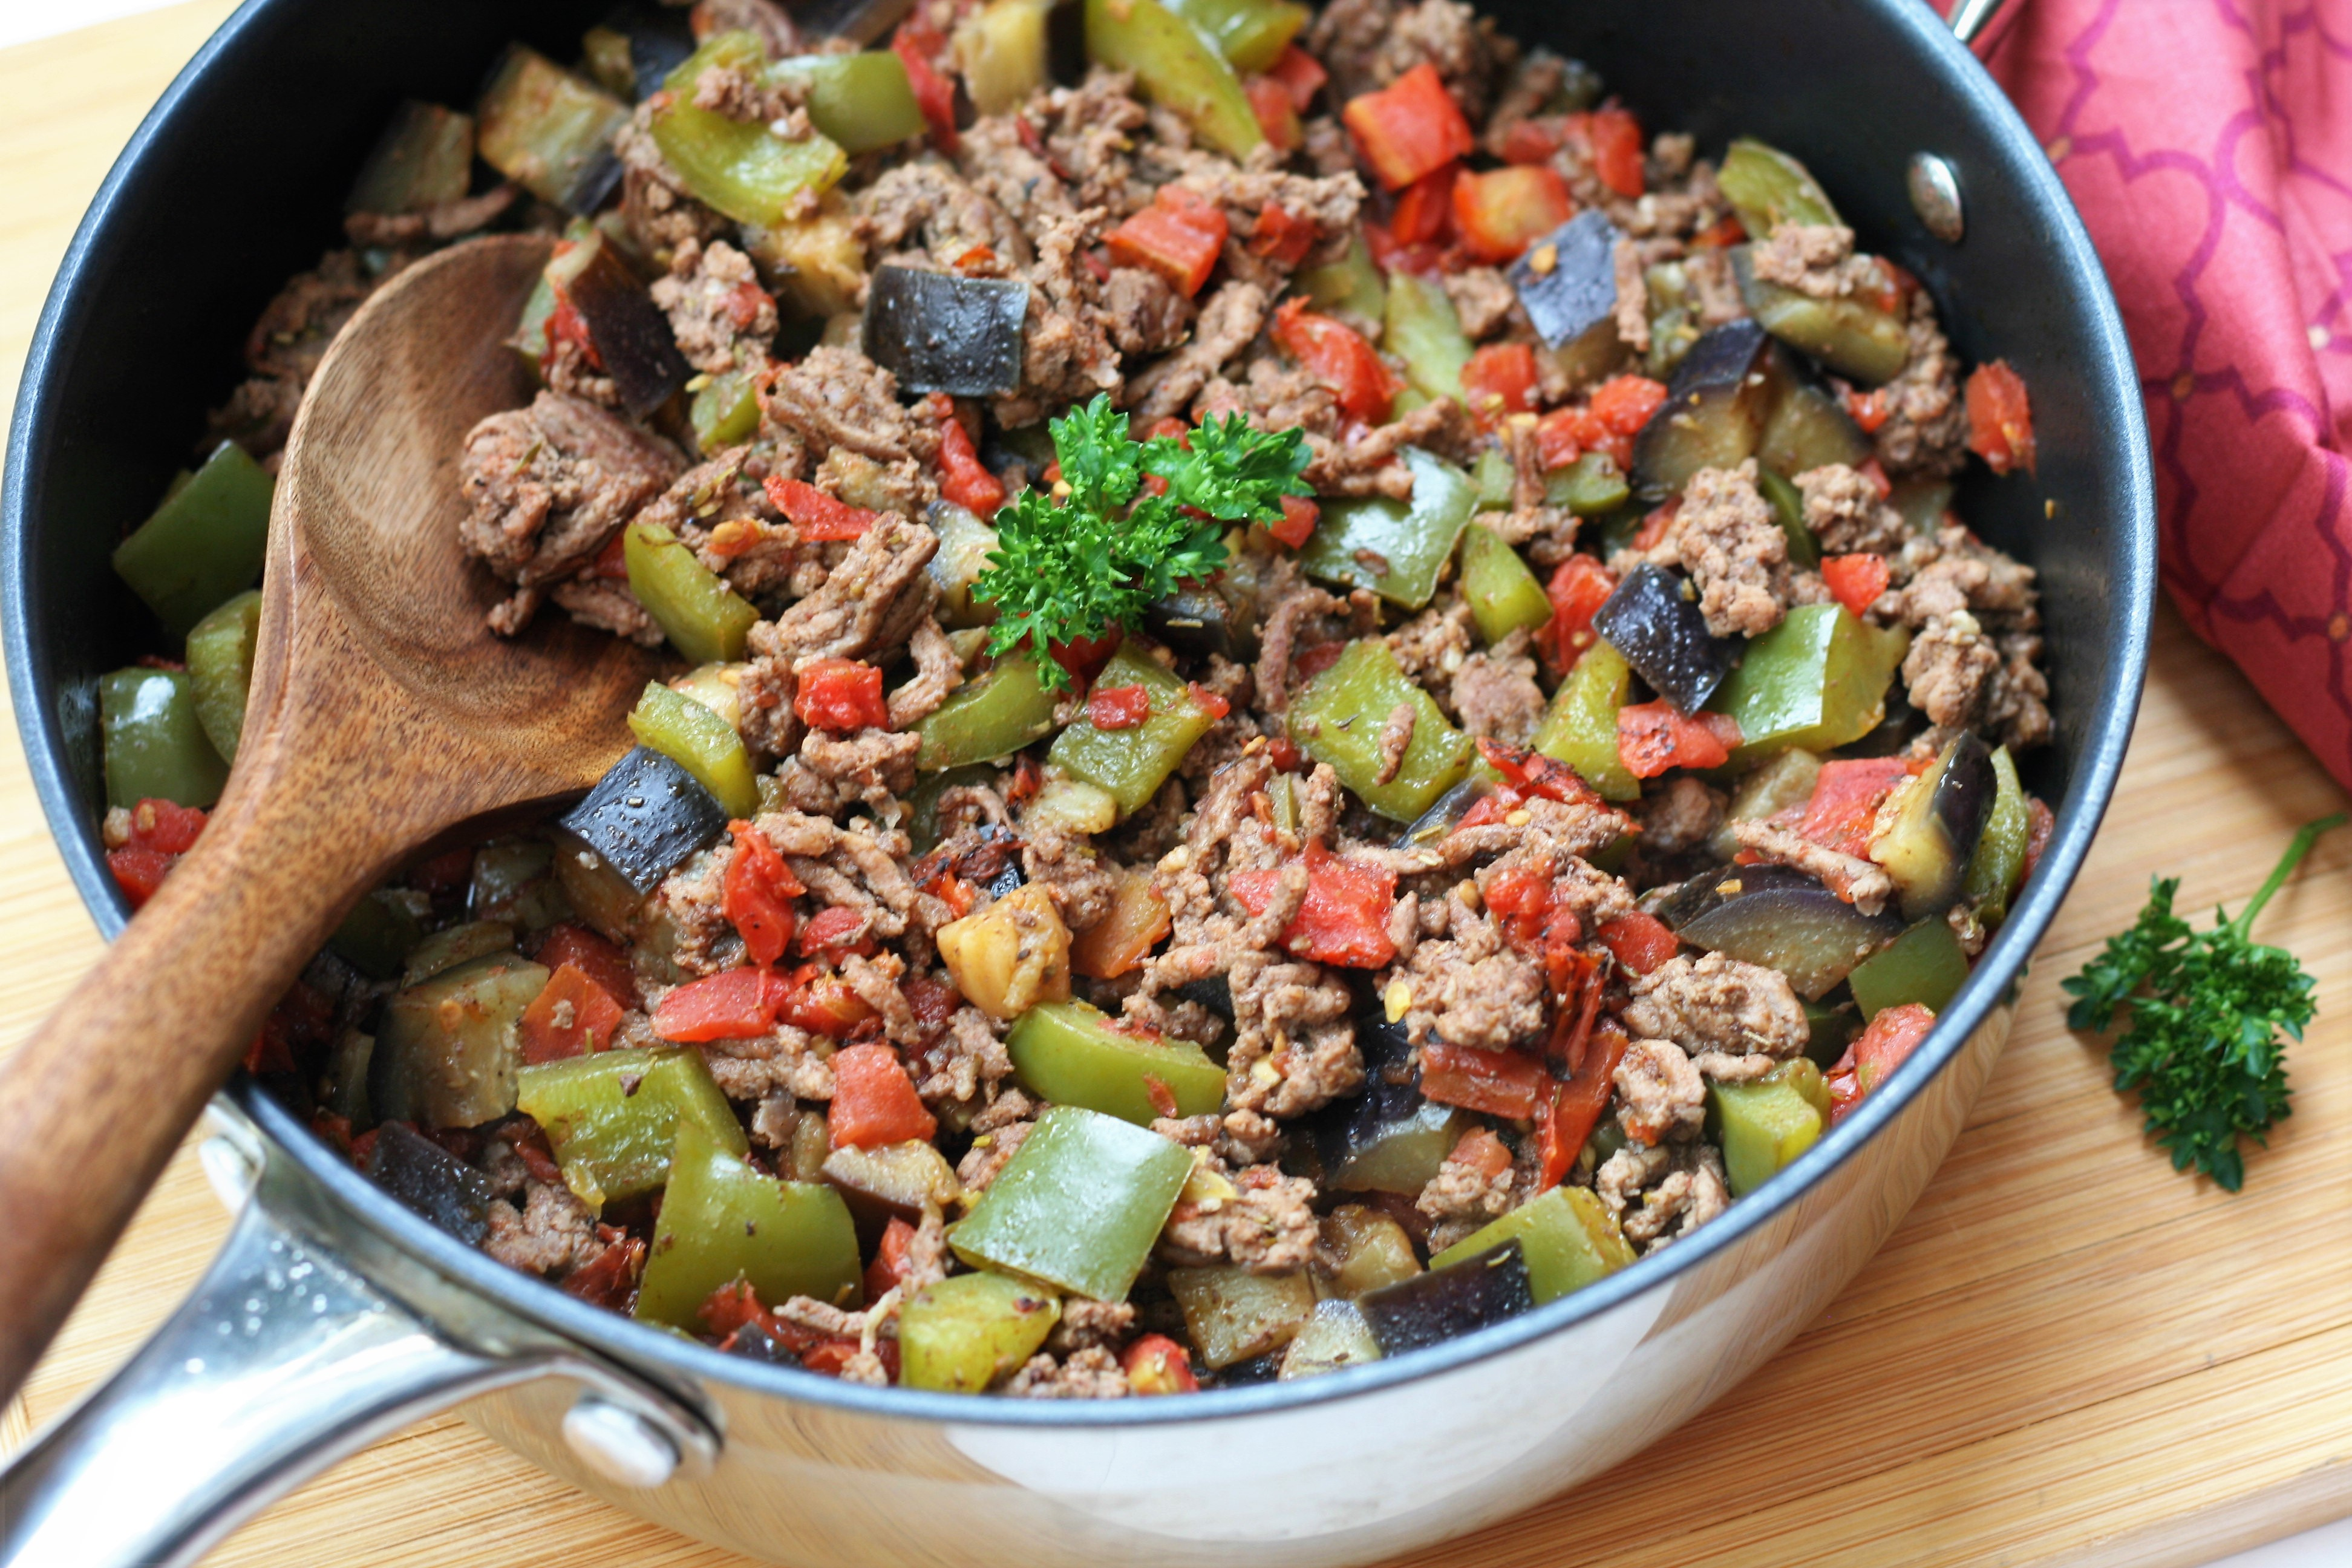 Spicy Low-Carb Eggplant with Beef and Tomatoes